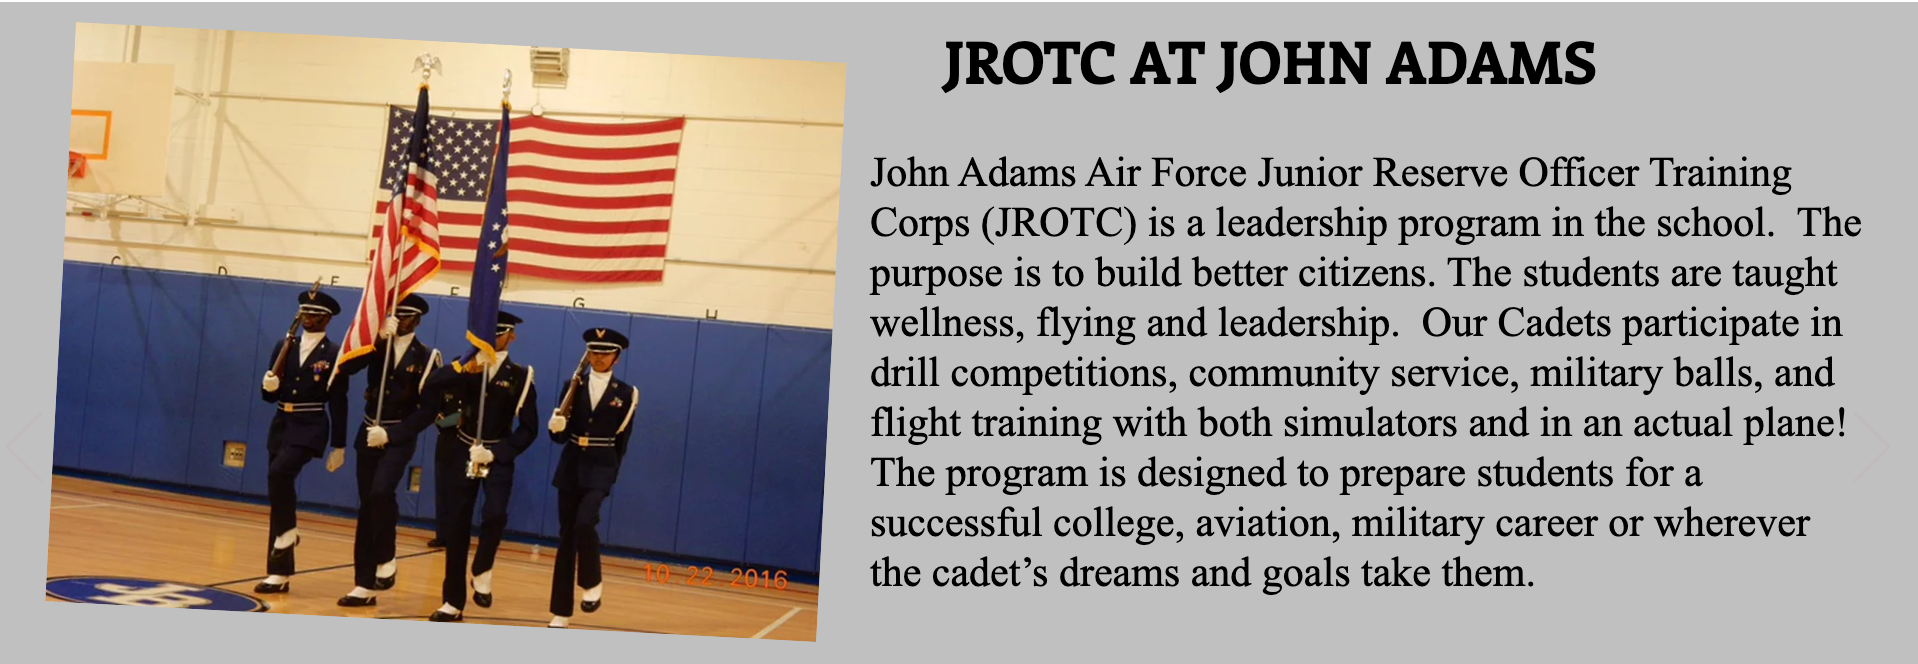 JROTC AT JOHN ADAMS